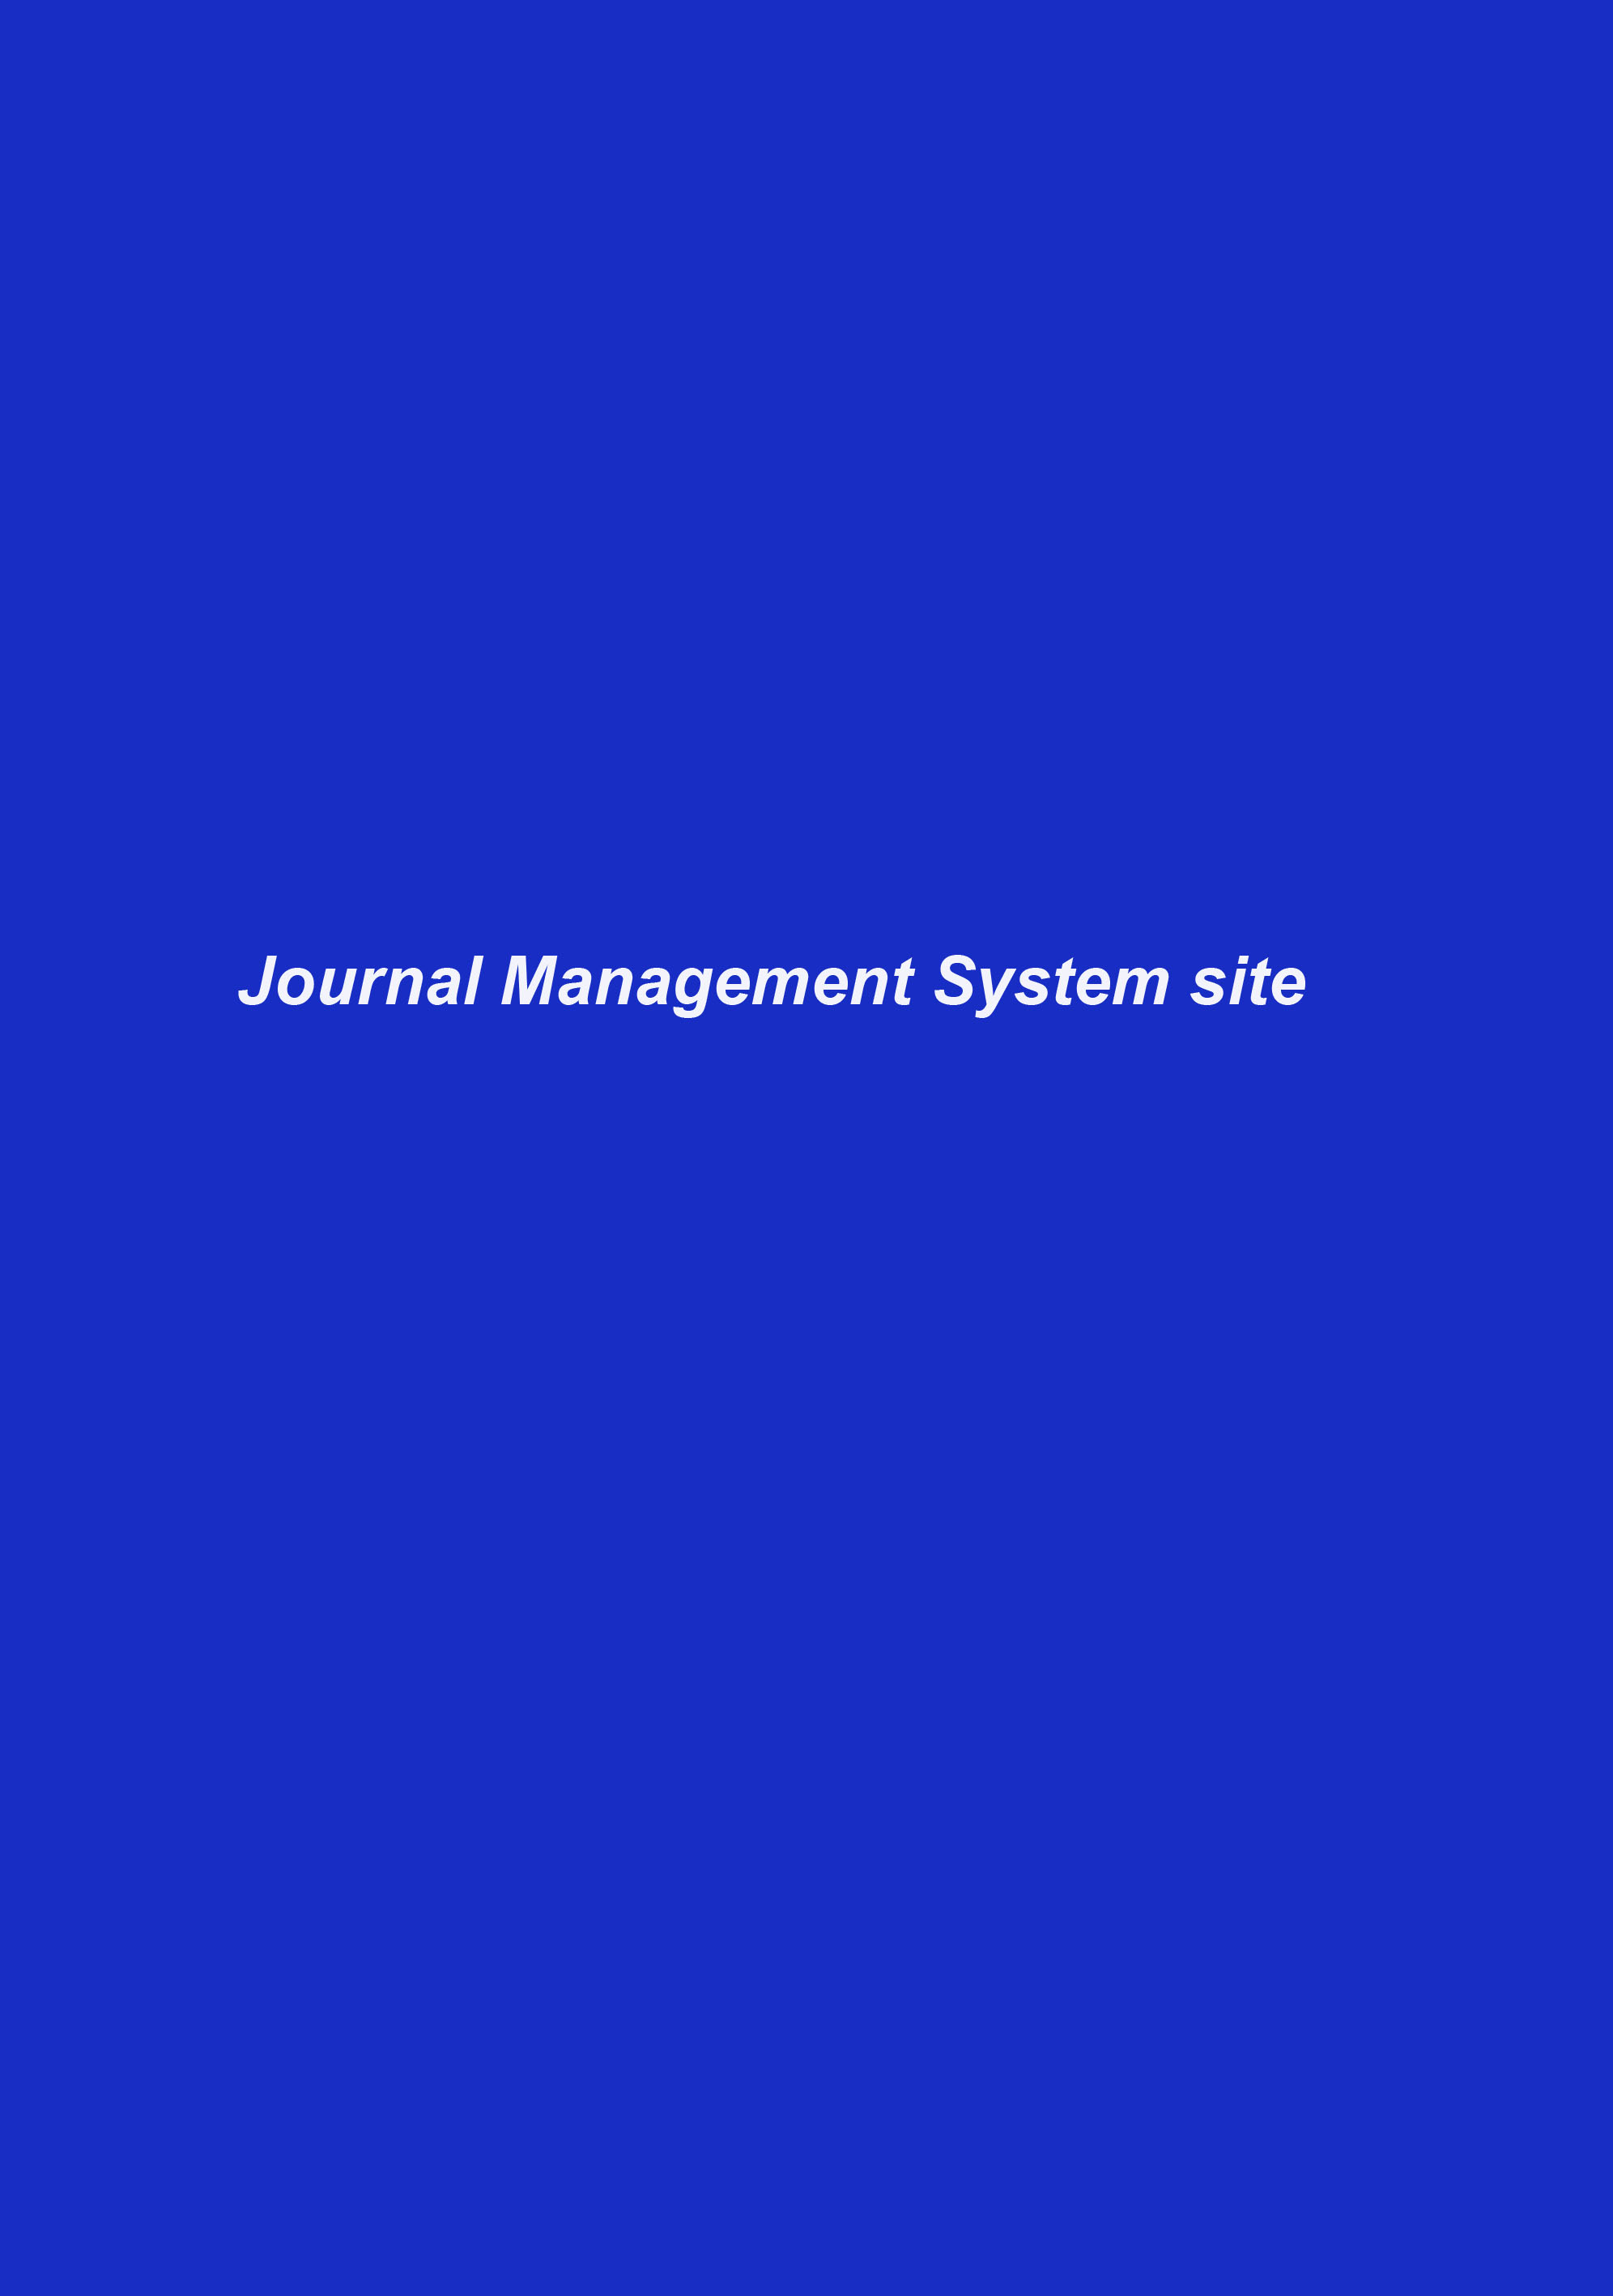 Journal Management System site